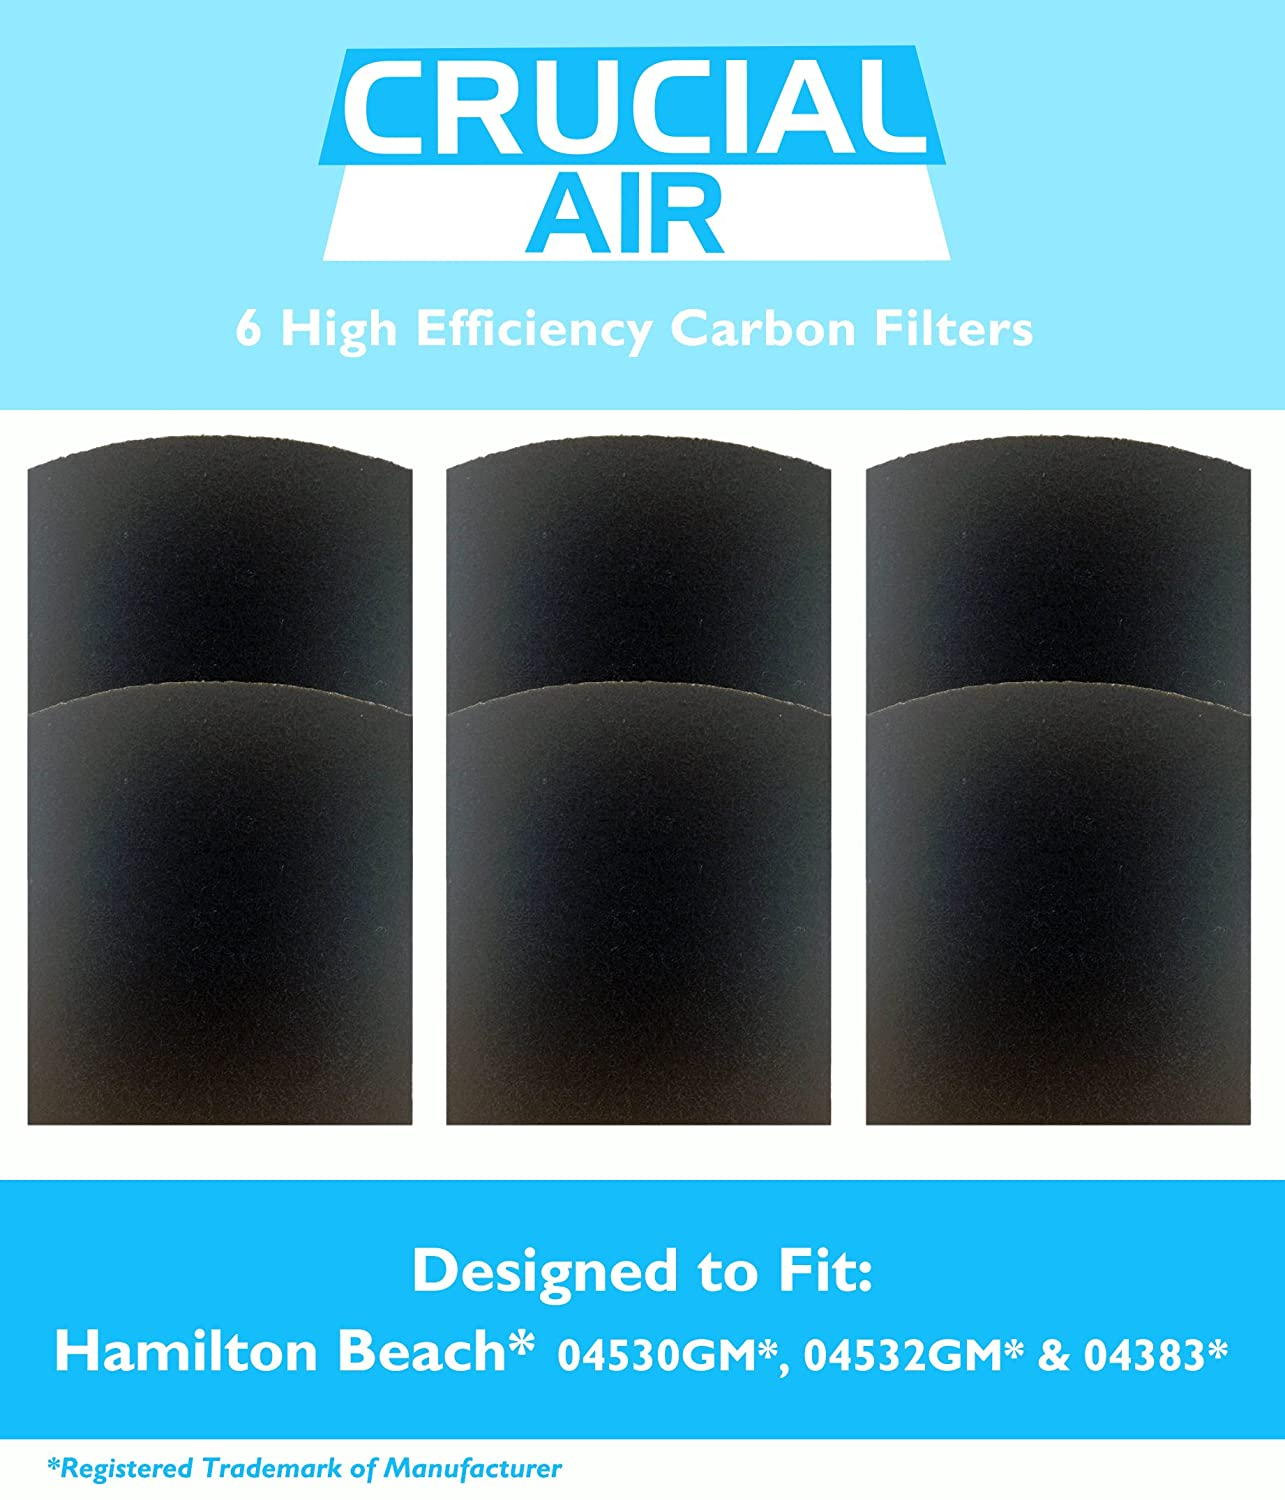 6 Crucial Air Replacement Carbon Filters Fit Hamilton Beach True Air  04530GM 04532GM 04383 04531GM 04530F 04294 By Crucial Air: Amazon.co.uk:  Kitchen & Home